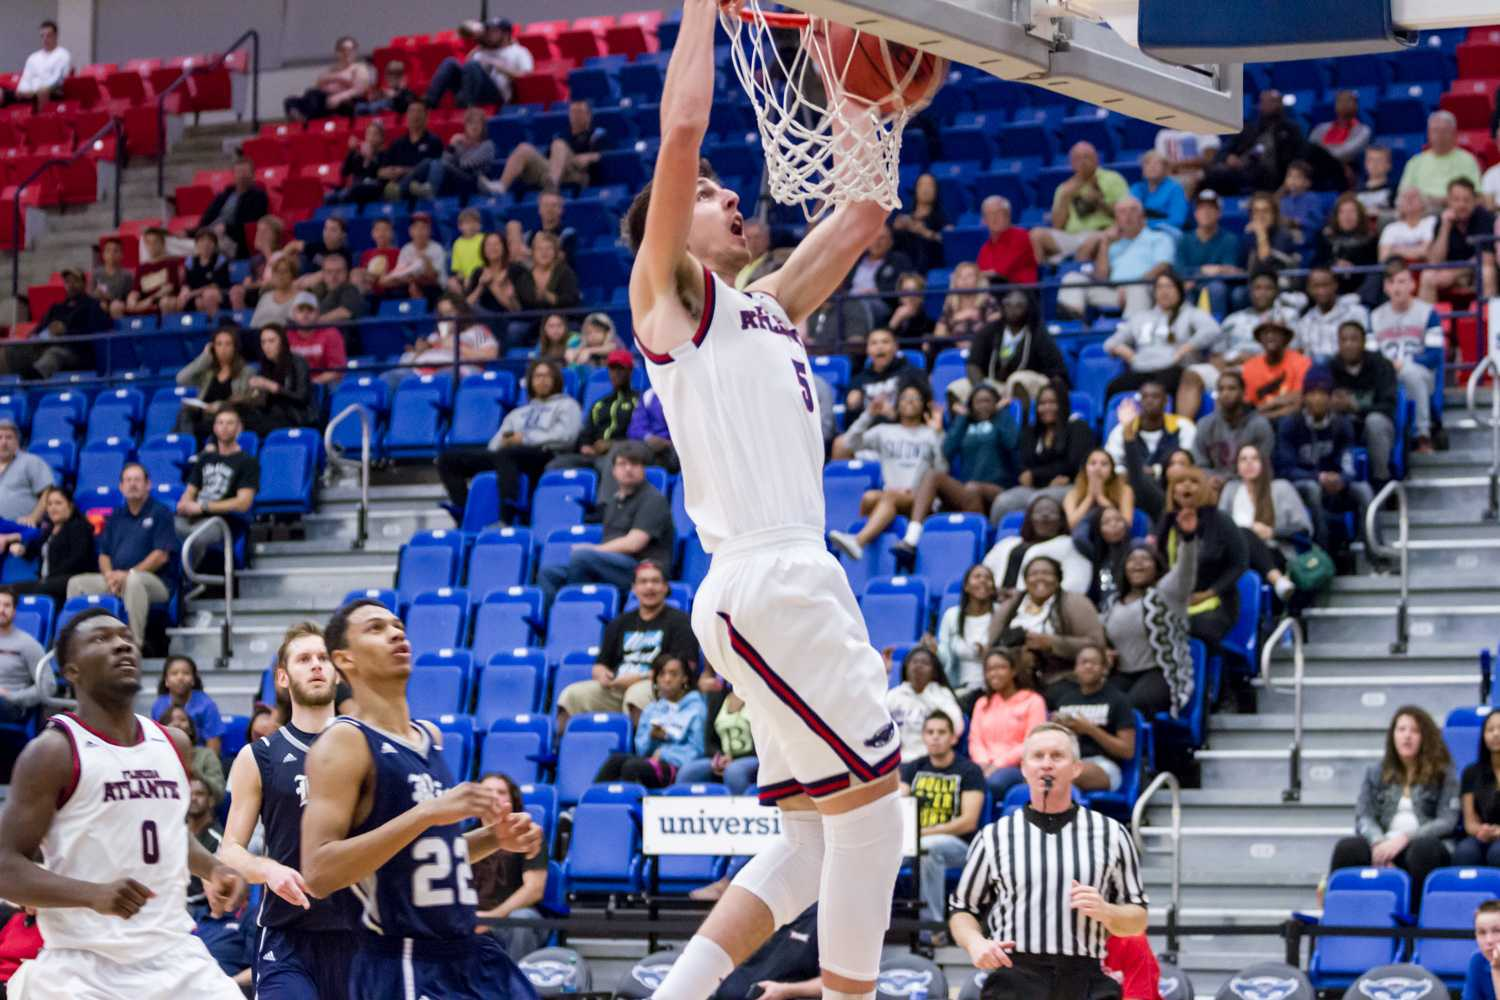 Forward Javier Lacunza (5) dunks to finish a fast break. The junior had four points on the night.